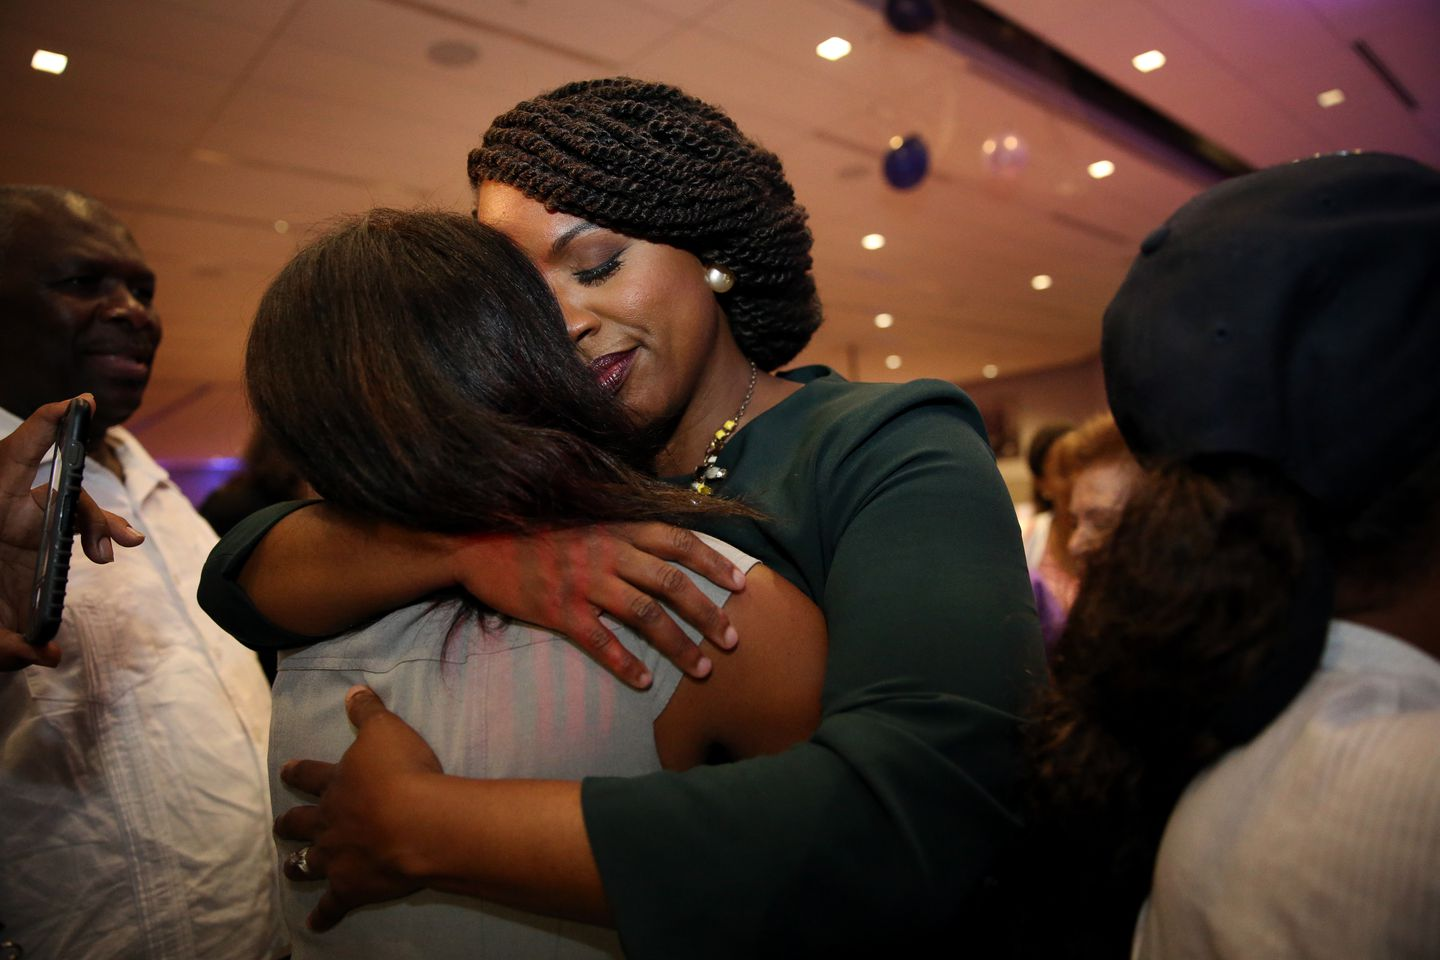 Ayanna Pressley greeted supporters after she became the Democratic candidate for the Massachusetts Seventh Congressional District on Sept. 4.